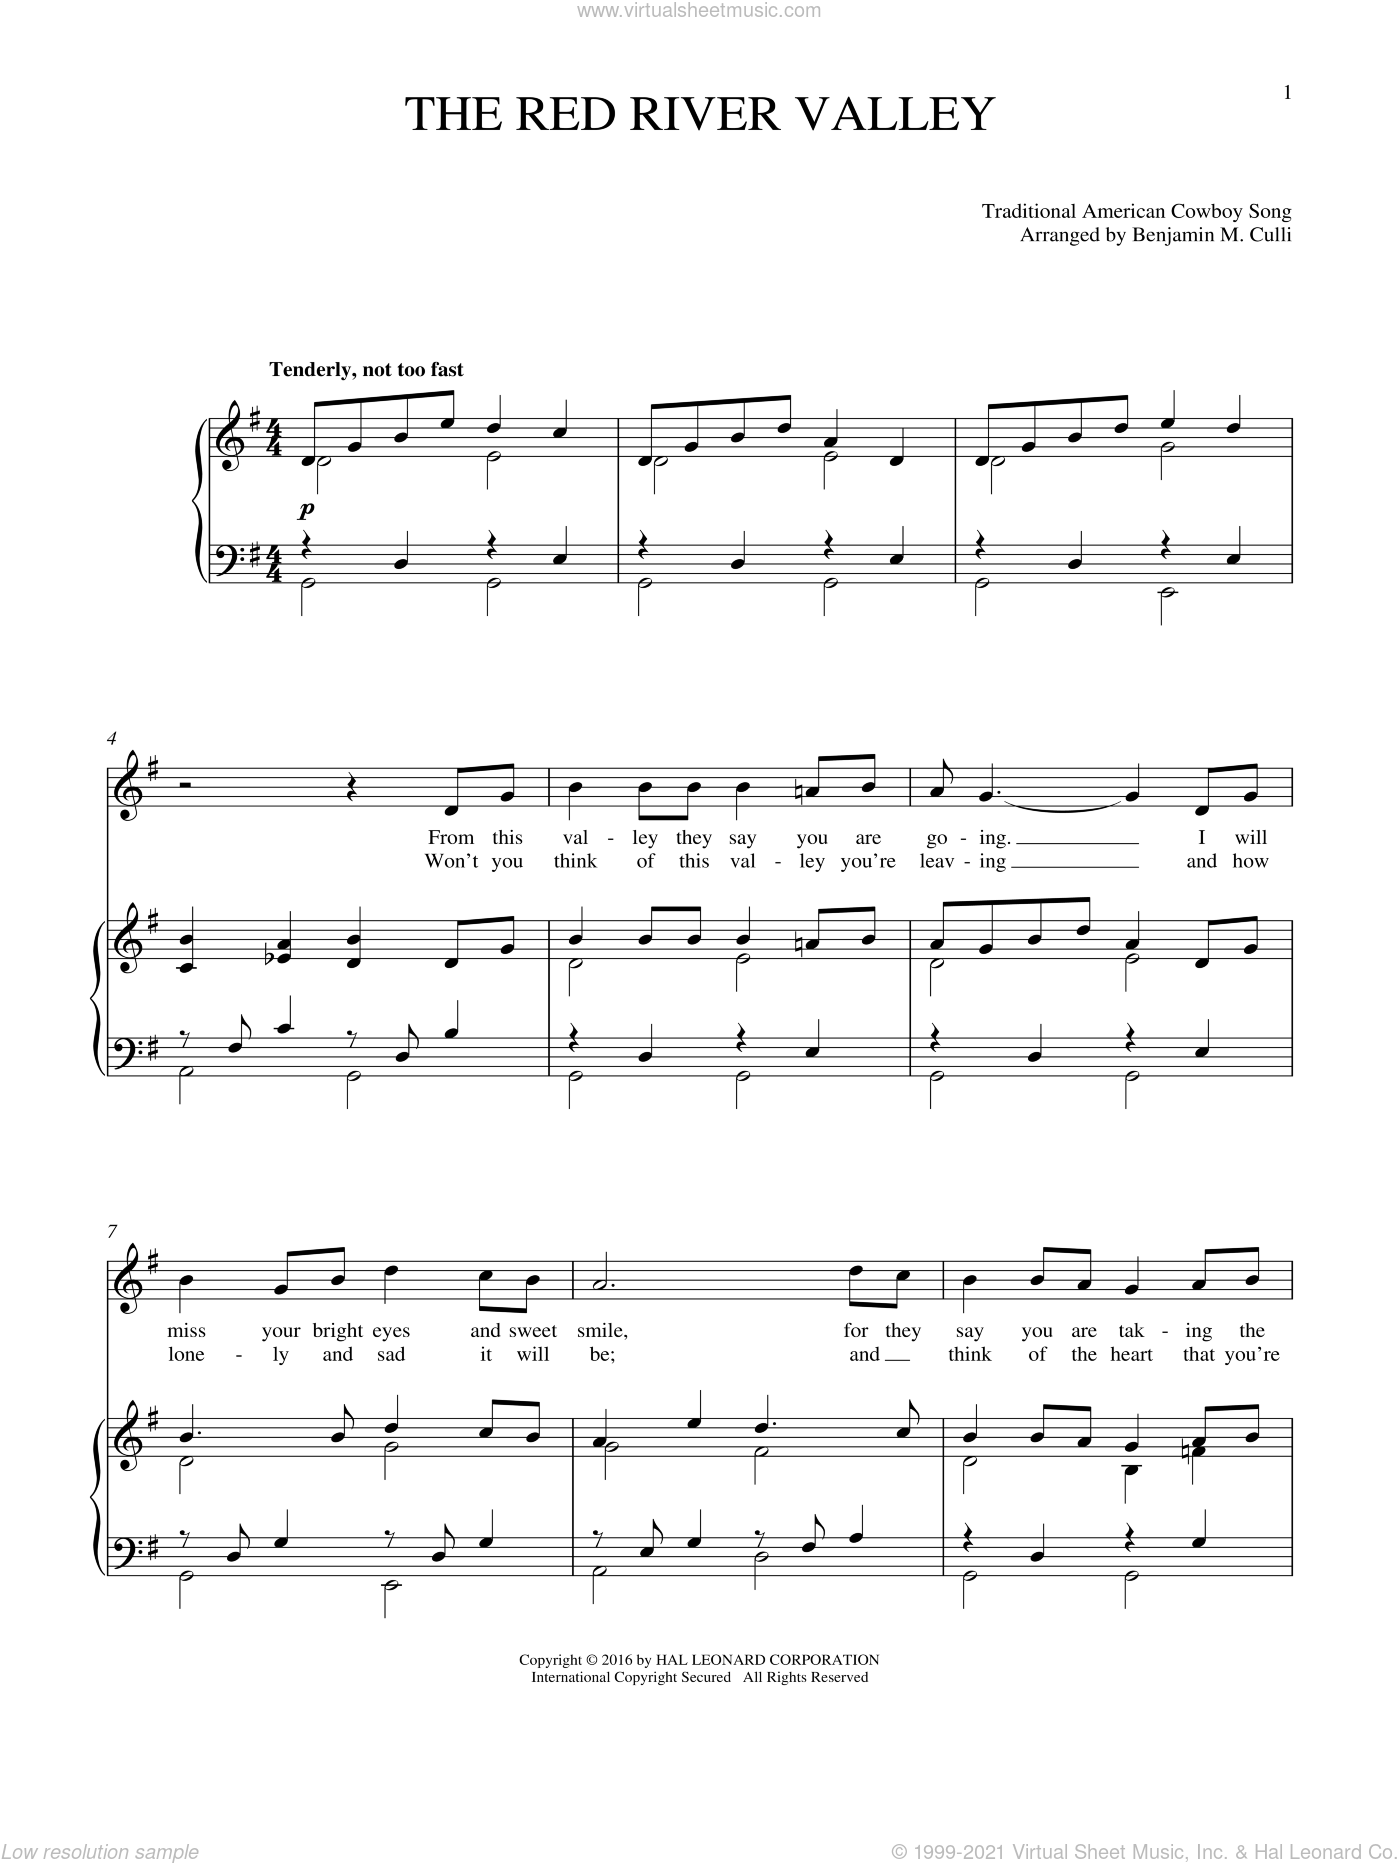 The Red River Valley sheet music for voice and piano by Traditional American Cowboy So, intermediate voice. Score Image Preview.